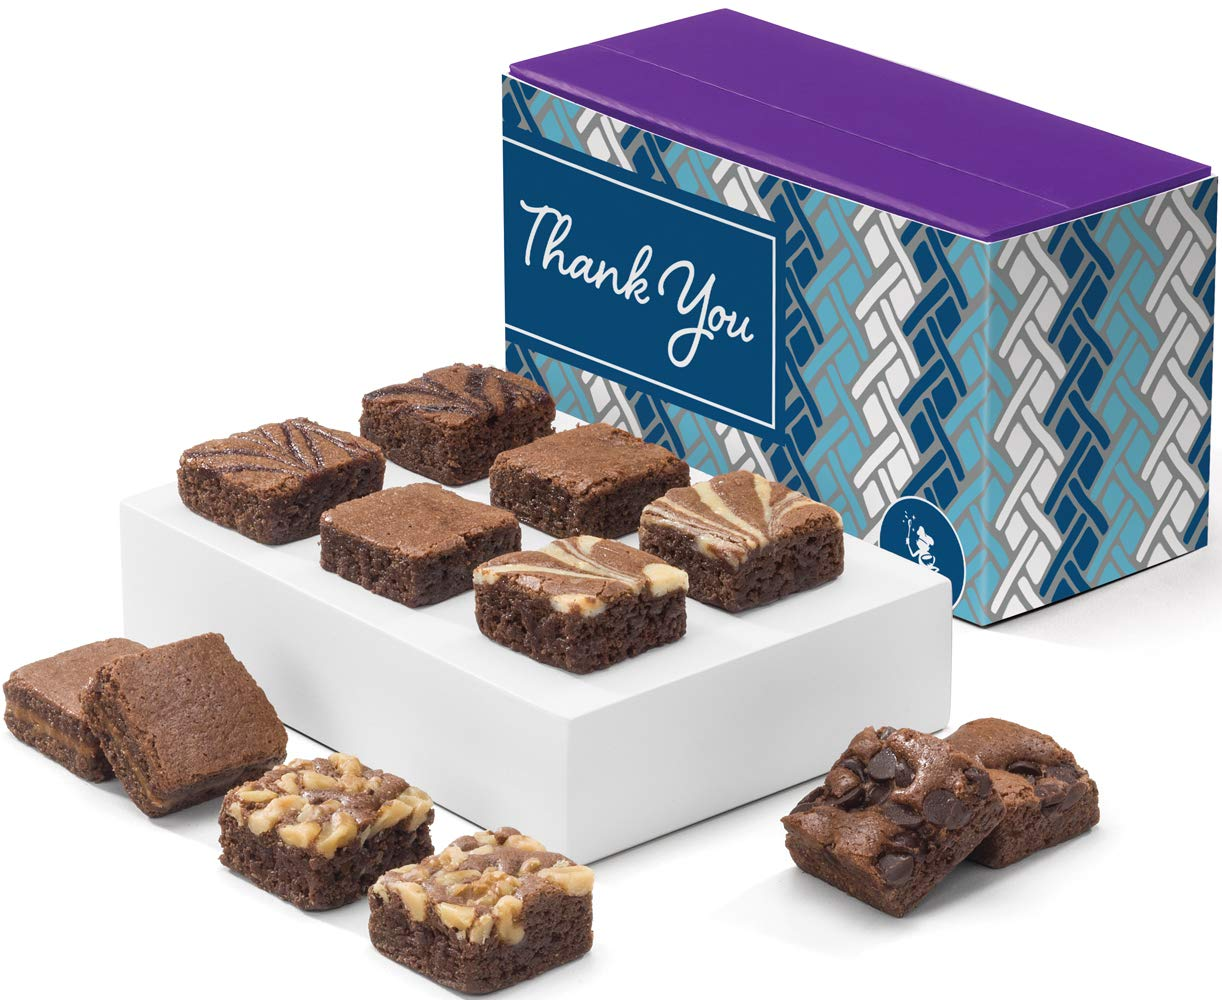 Fairytale Brownies Thank You Magic Morsel Dozen Gourmet Chocolate Food Gift Basket - 1.5 Inch x 1.5 Inch Bite-Size Brownies - 12 Pieces - Item HY412